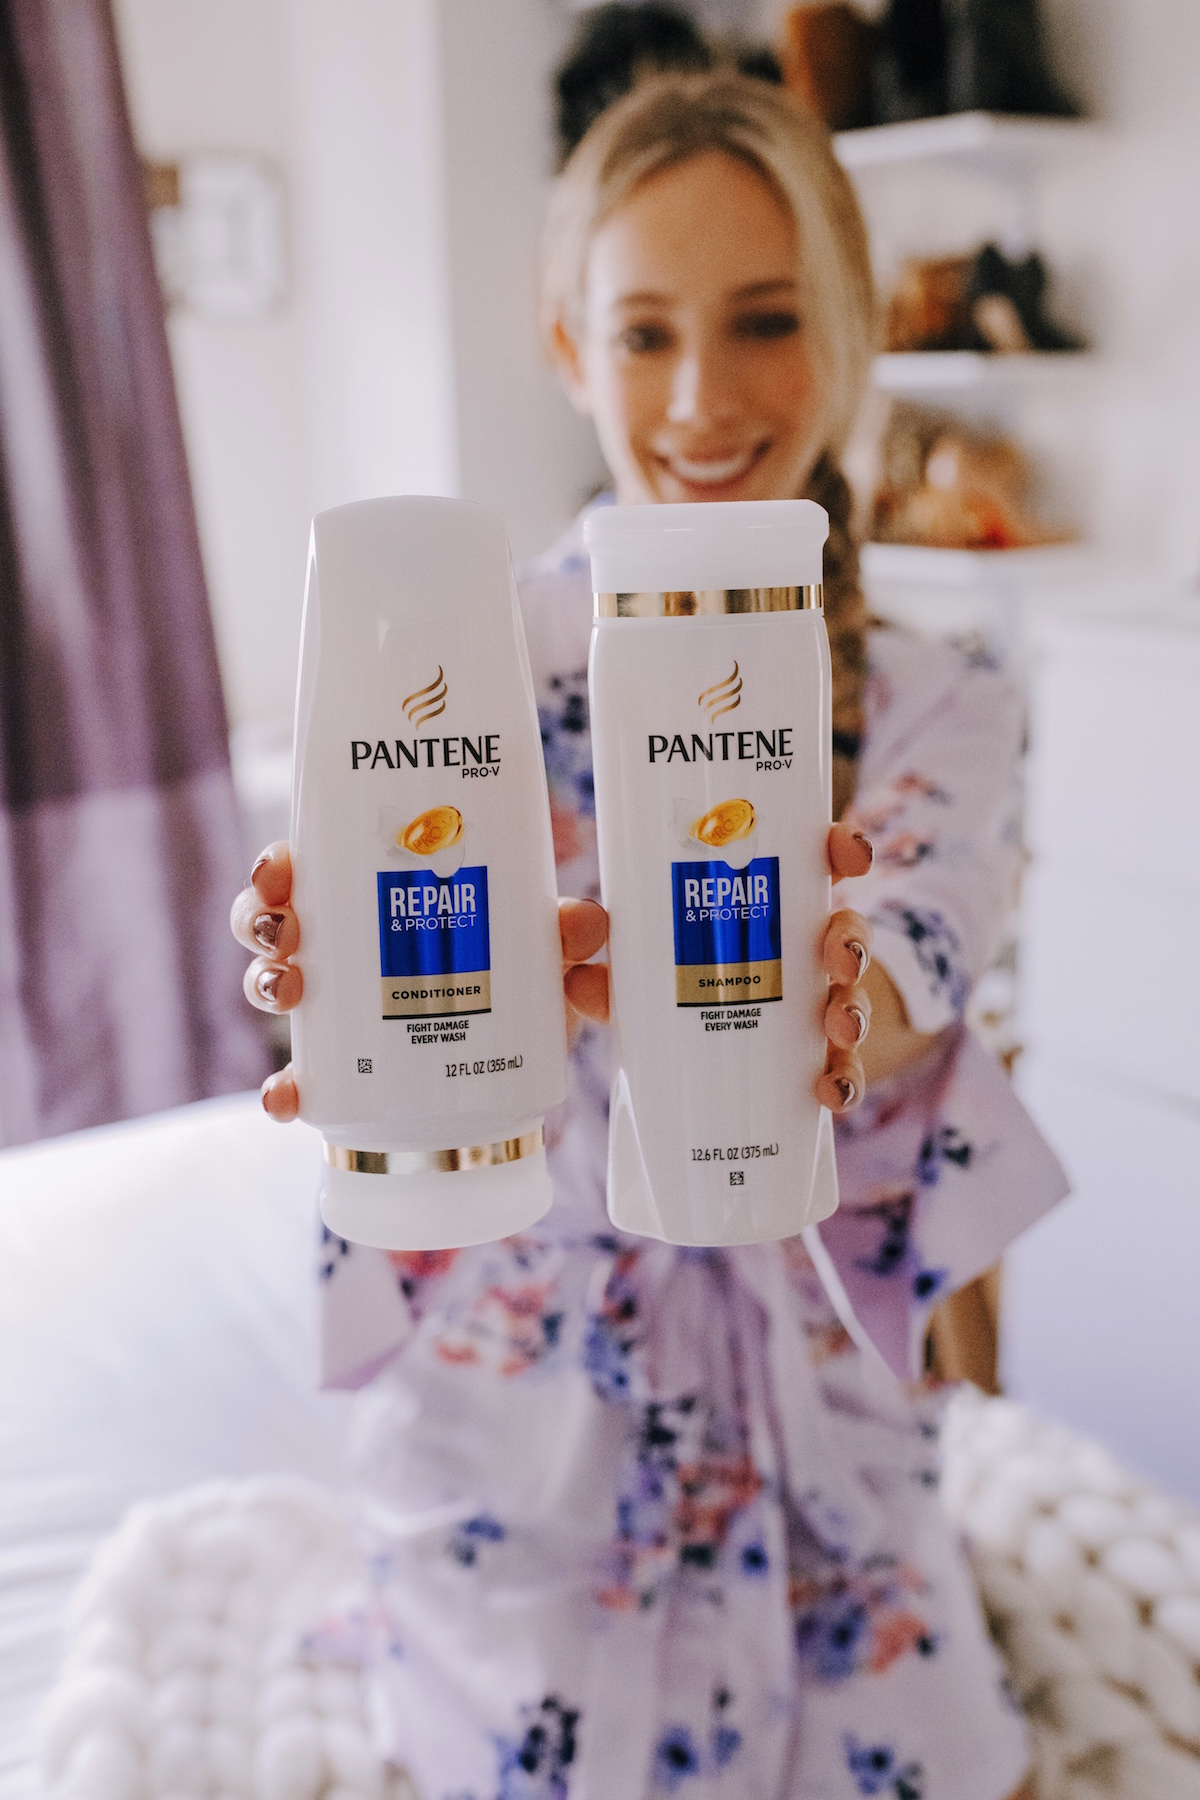 Pantene Repair & Protect Shampoo Conditioner Review